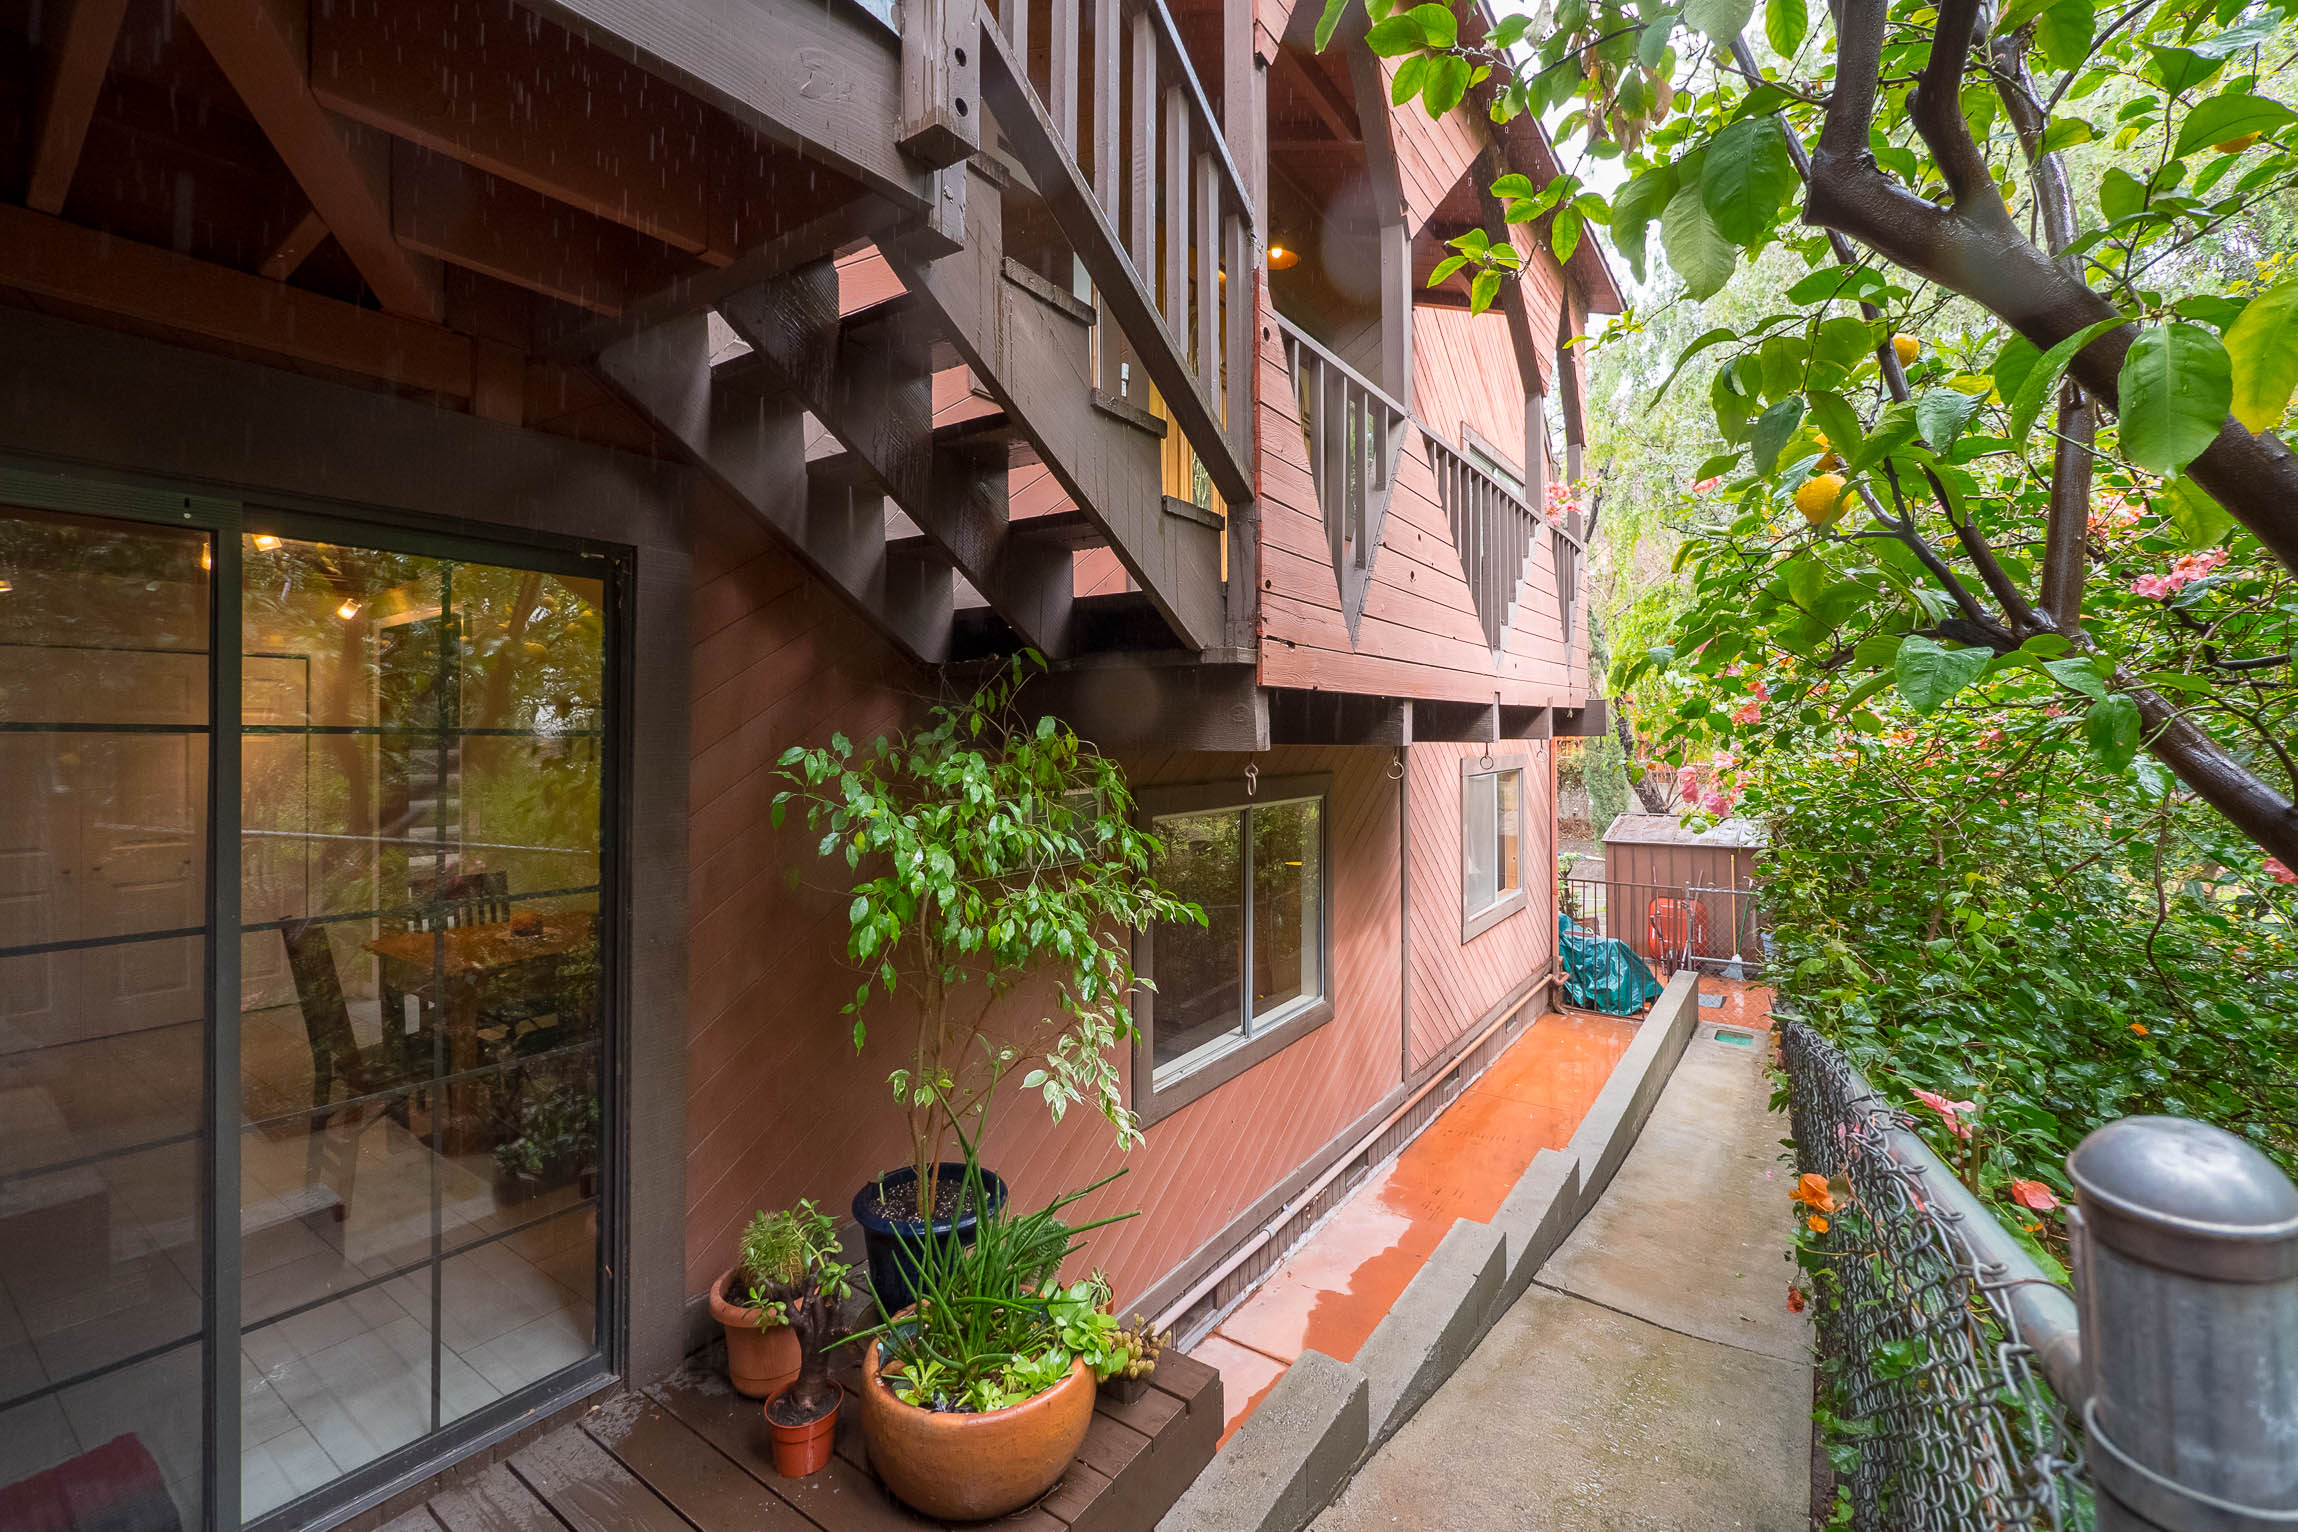 Relaxing and Spacious 5-Bedroom Redwood Home w/ Olympic Pool in Woodland Hills